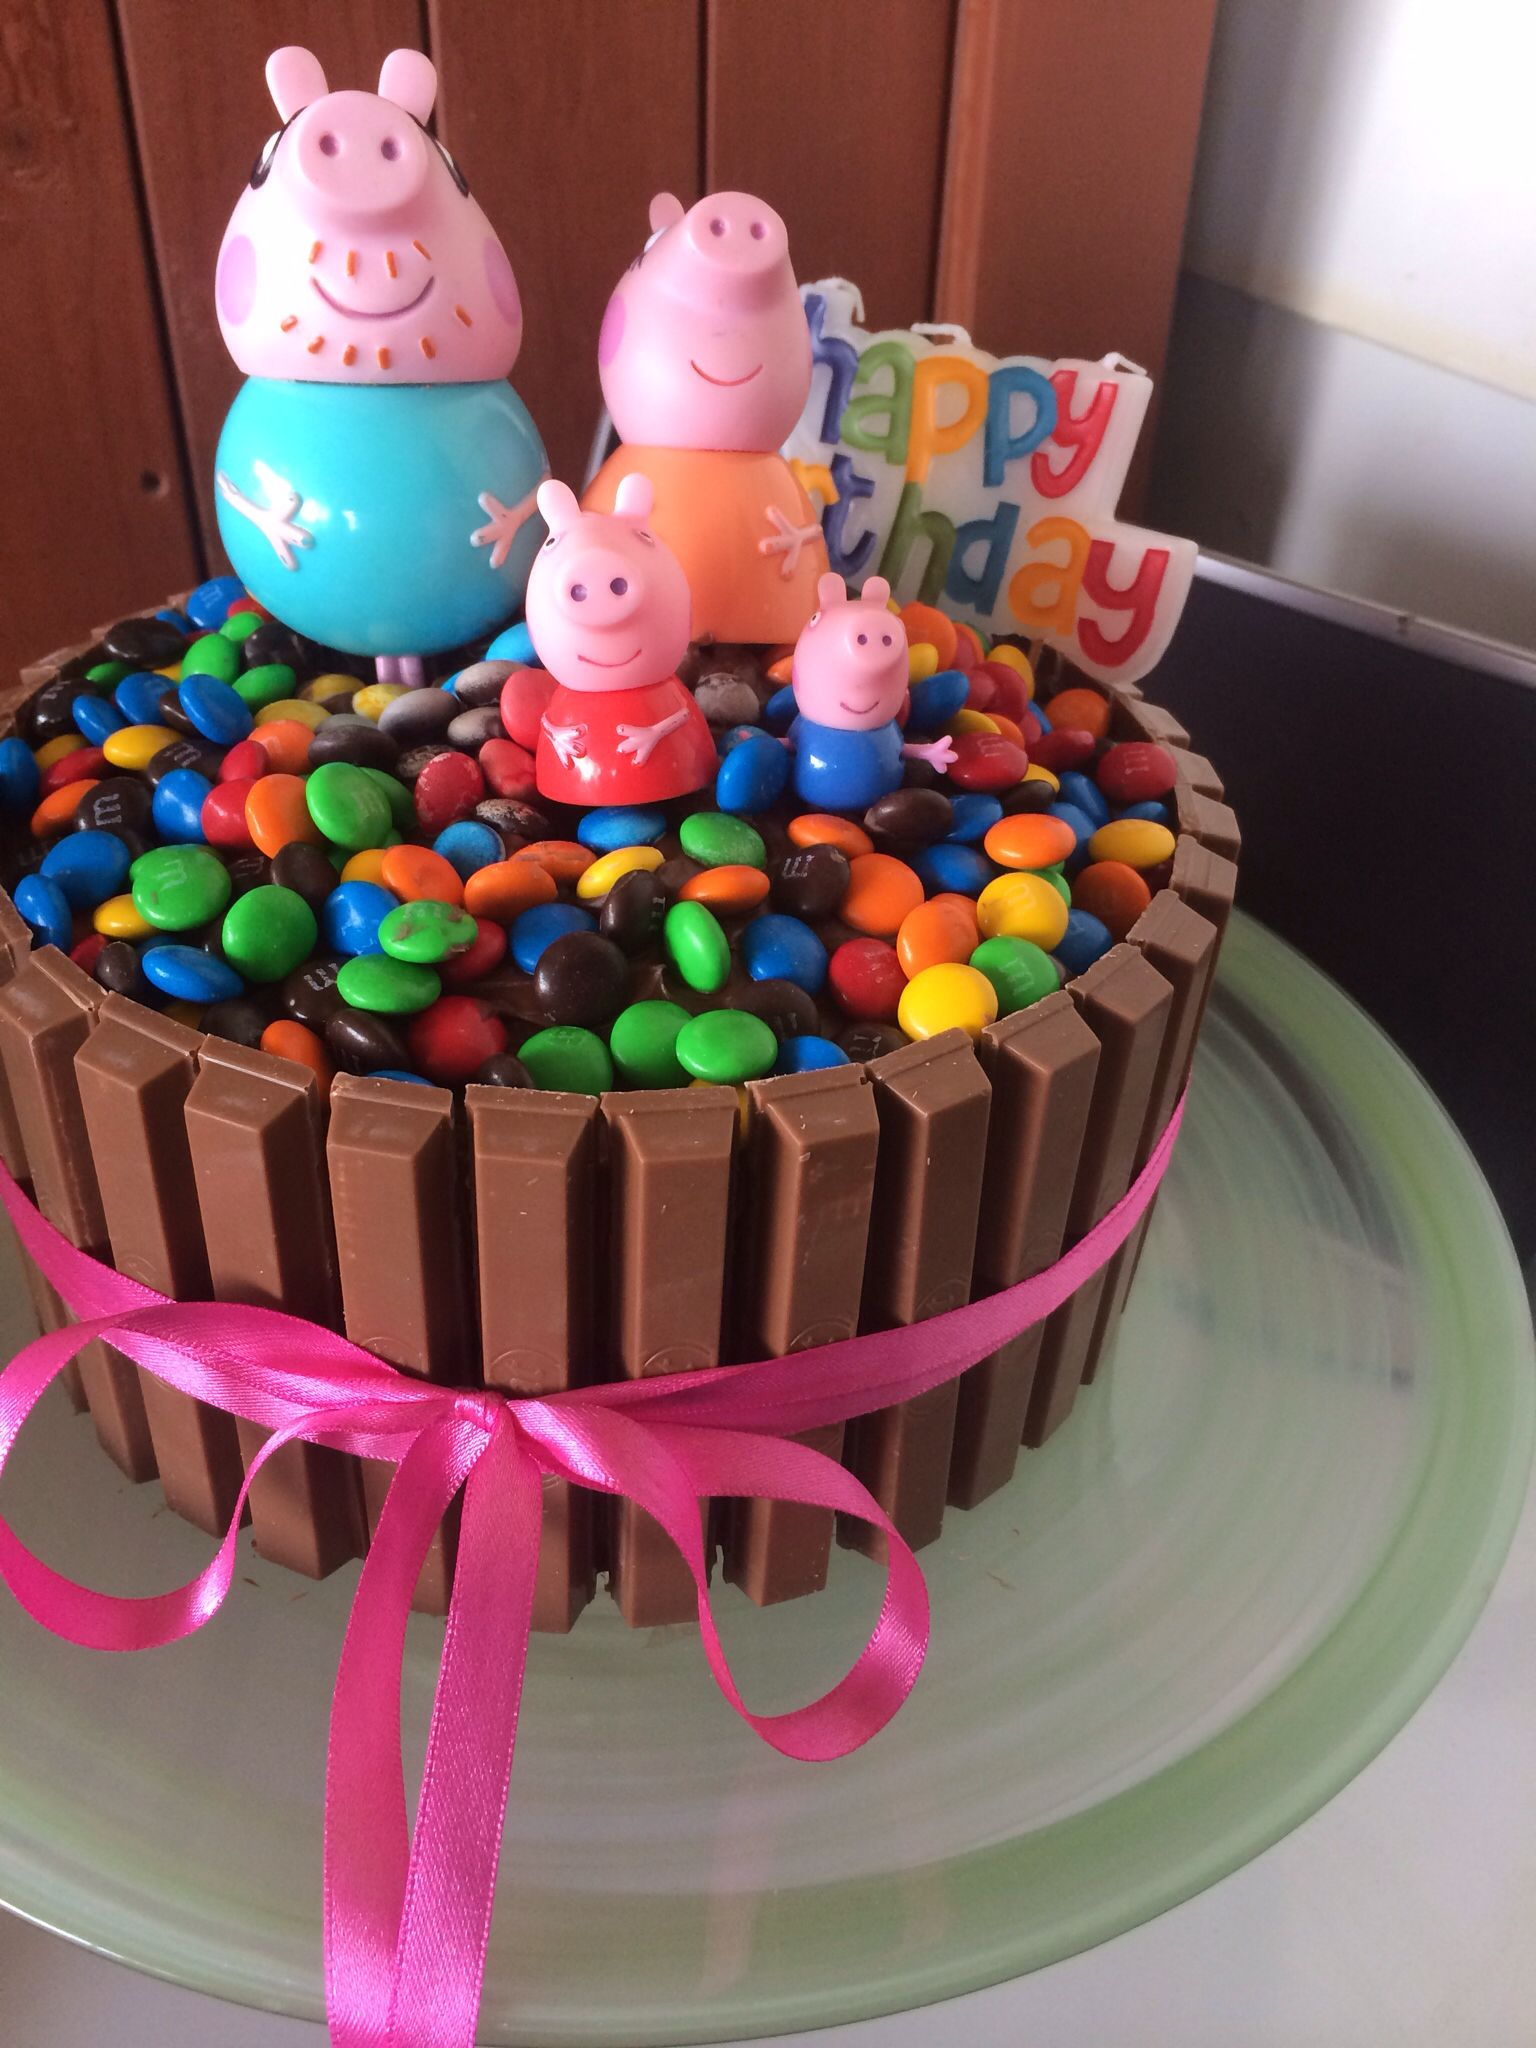 Kitkat Kuchen Mit Smarties Peppa Pig Chocolate Cake Kitkat Smarties M N Ms Kids Birthday